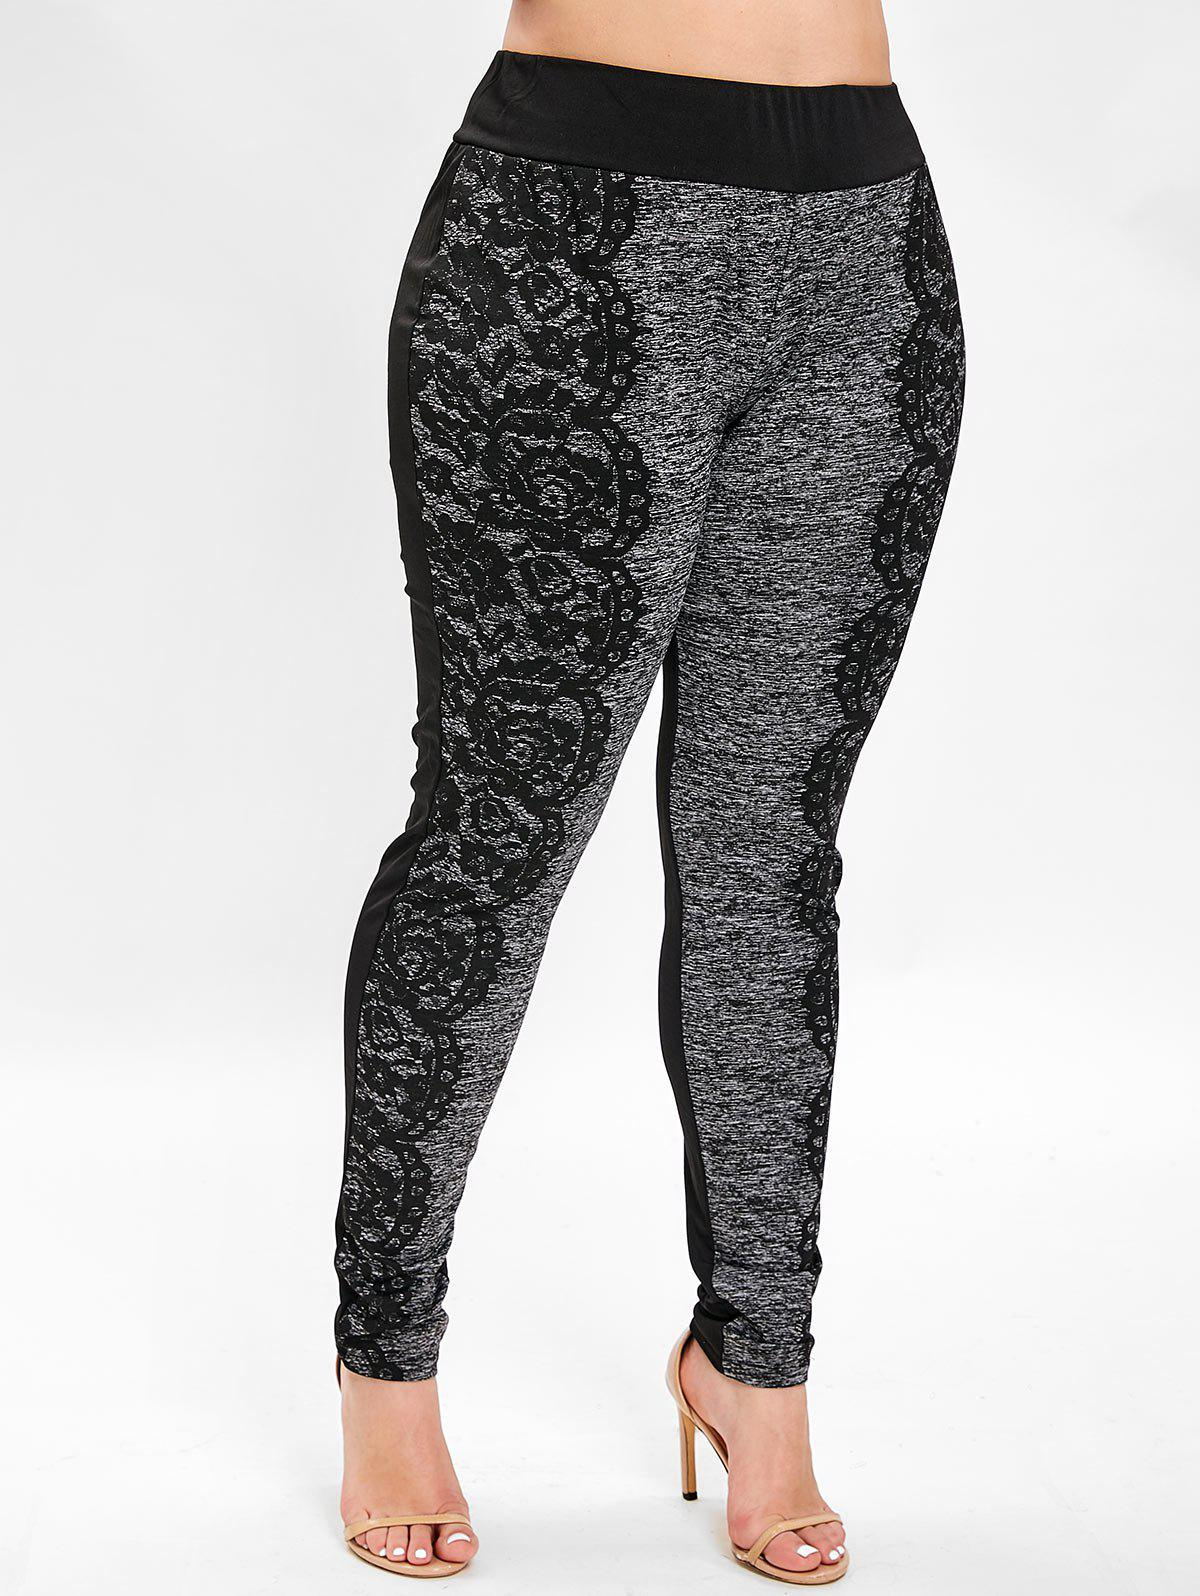 Fashion Plus Size Space Dye 3D Lace Print Leggings